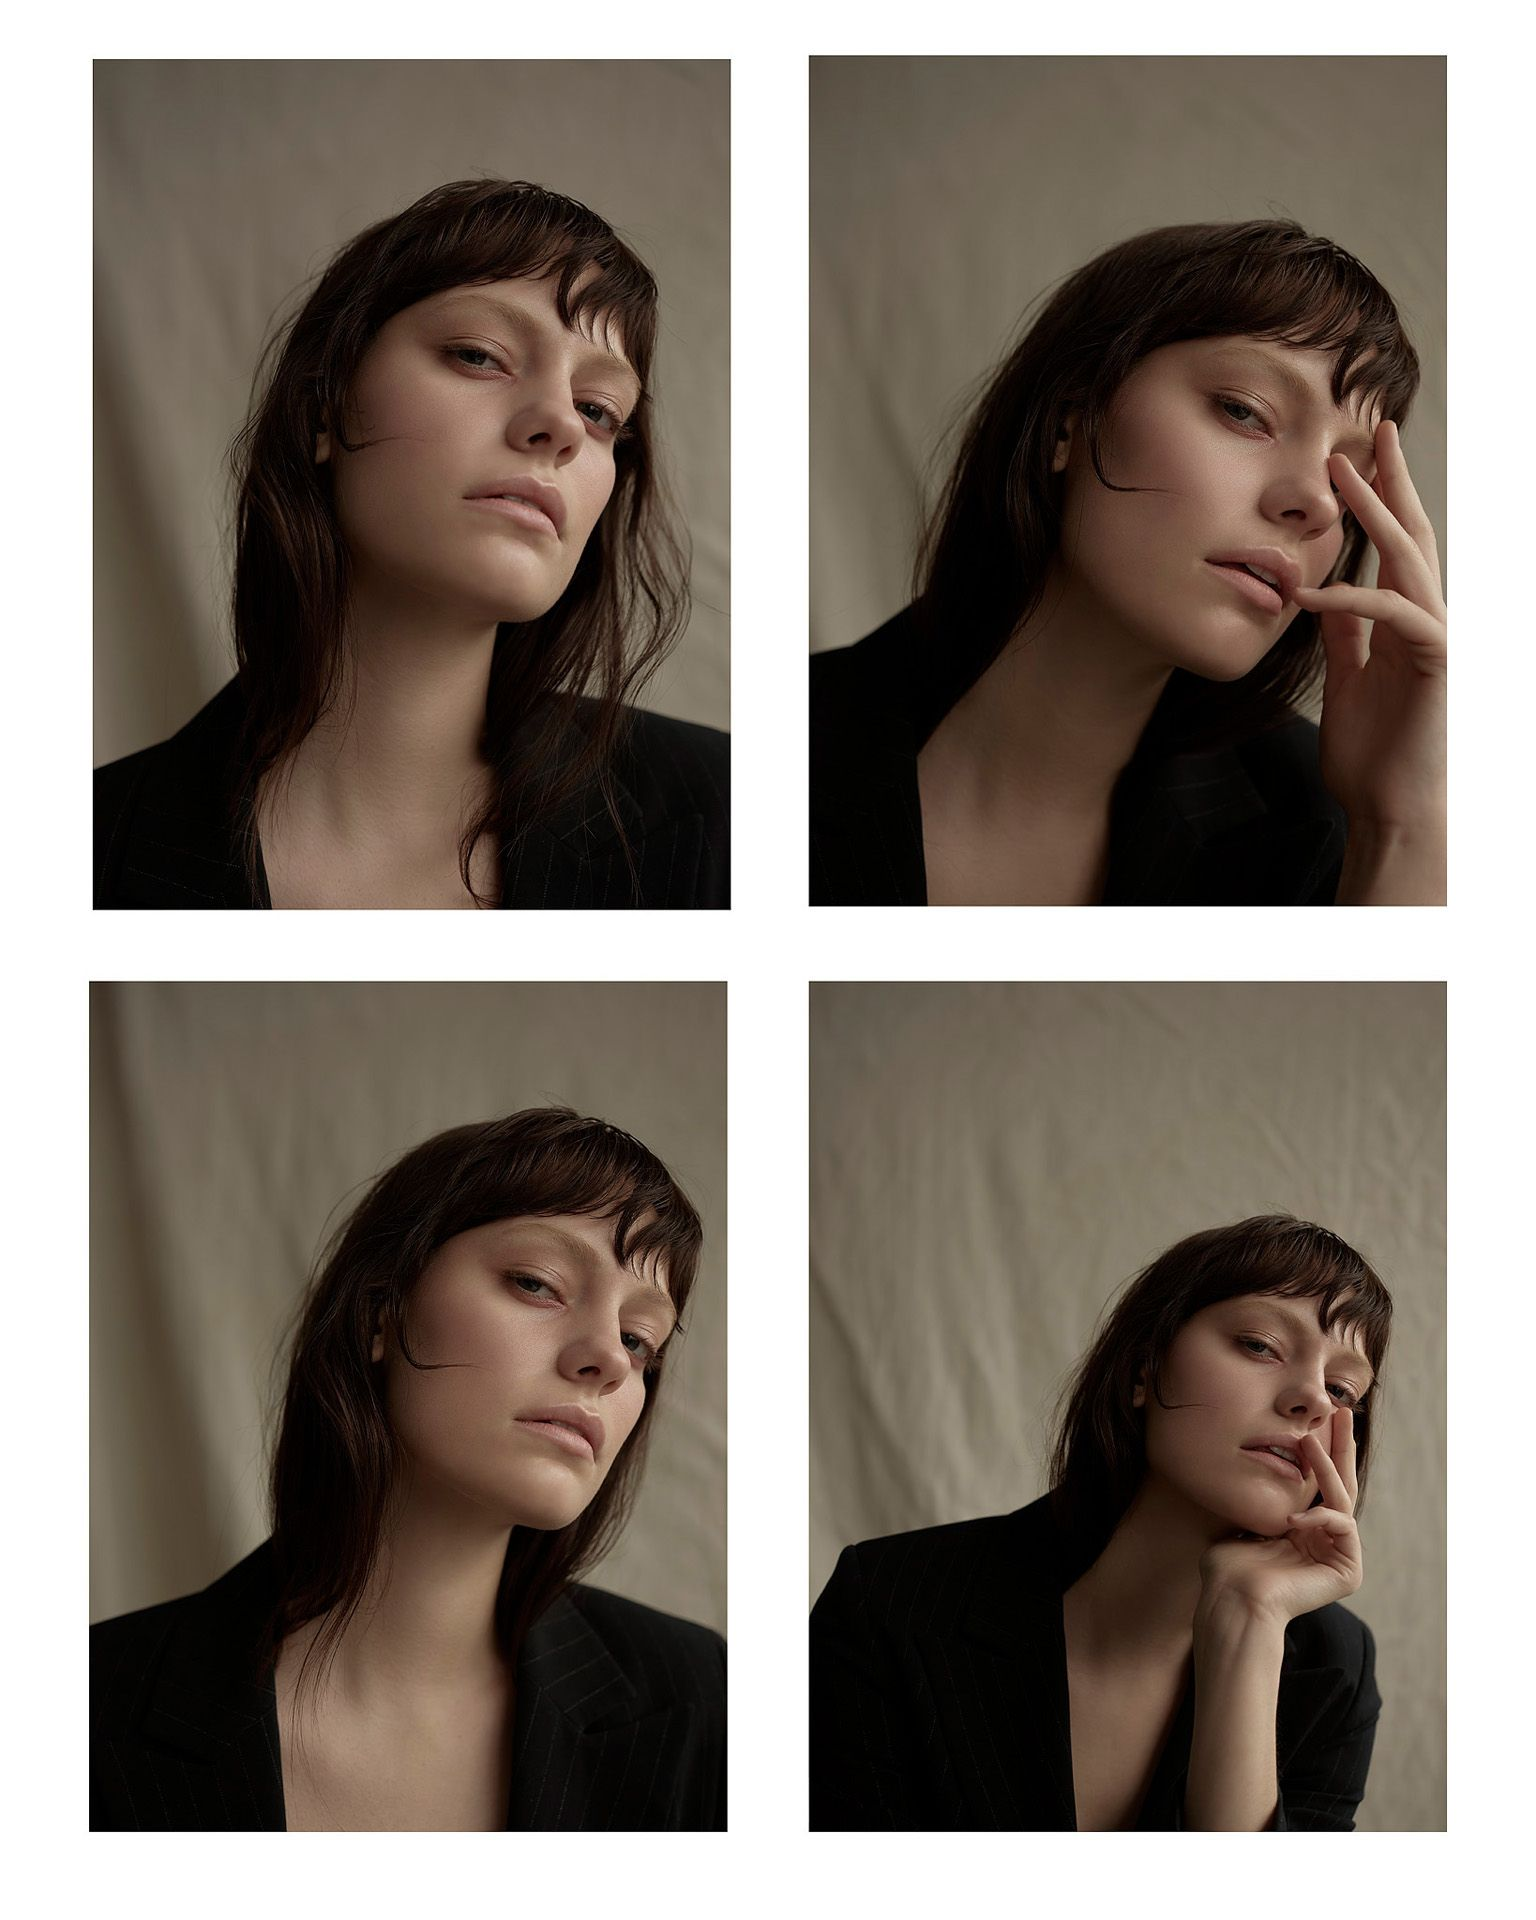 quatuor of close up shots of woman model face wearing black suit jacket looking at camera on beige fabric background by Maxyme G Delisle for Mariane